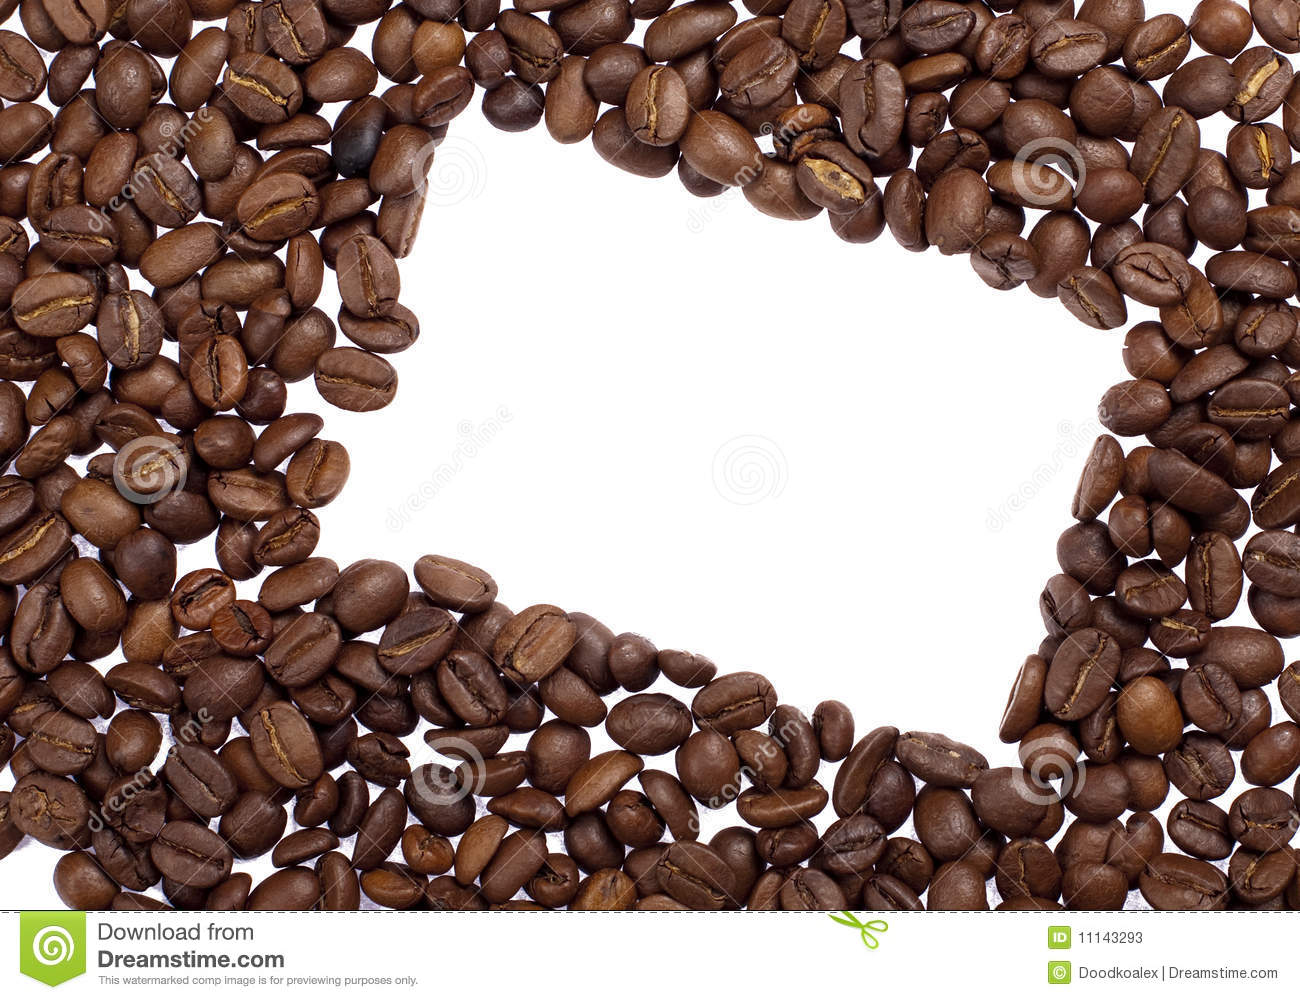 Coffee Bean Border ~ Coffee bean border pictures to pin on pinterest daddy